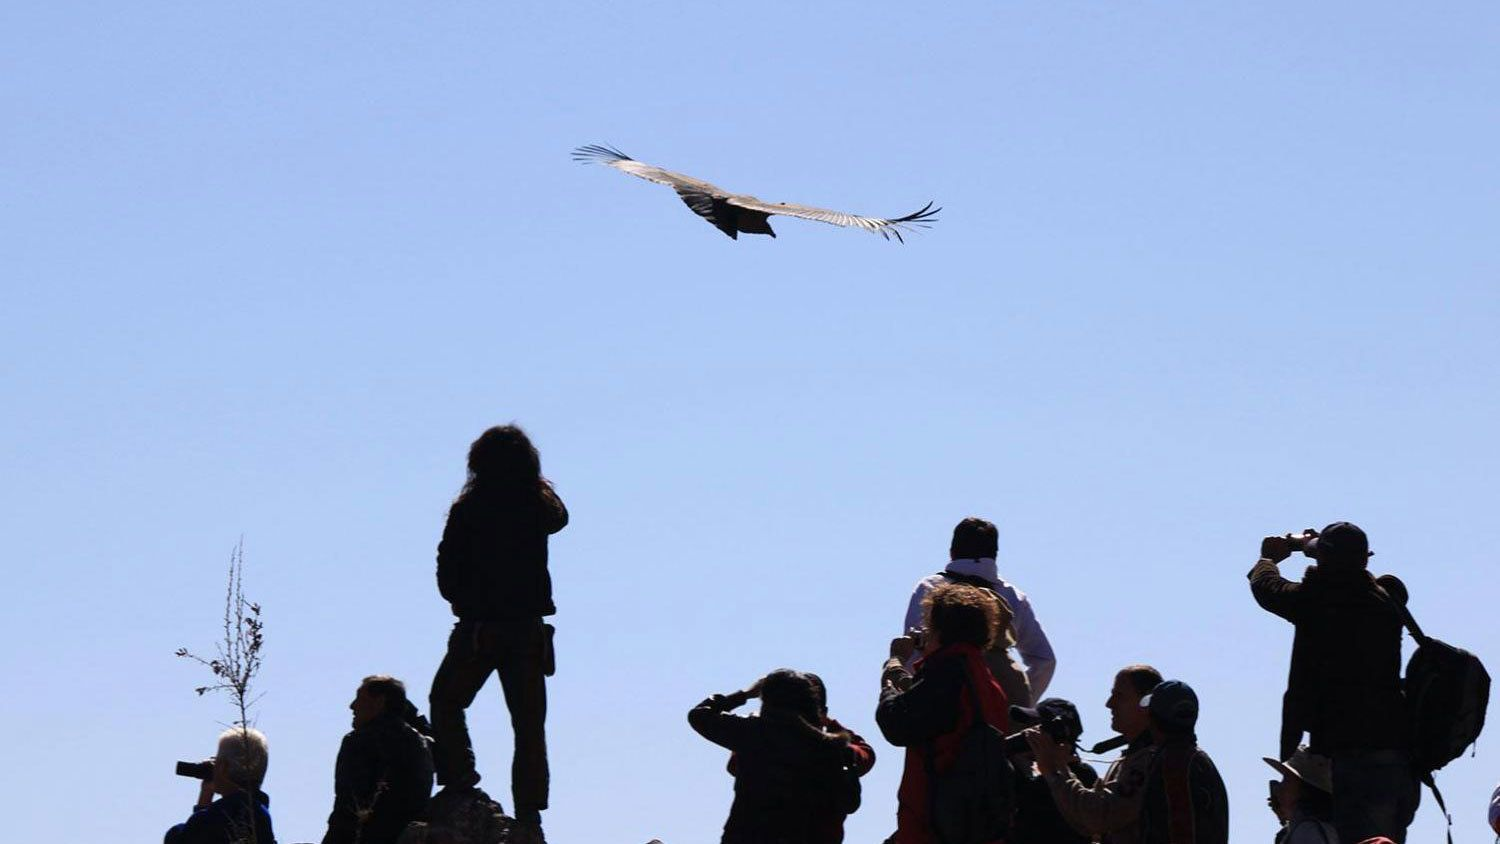 Condor flying above tourists in the Pampa Canahaus reserve